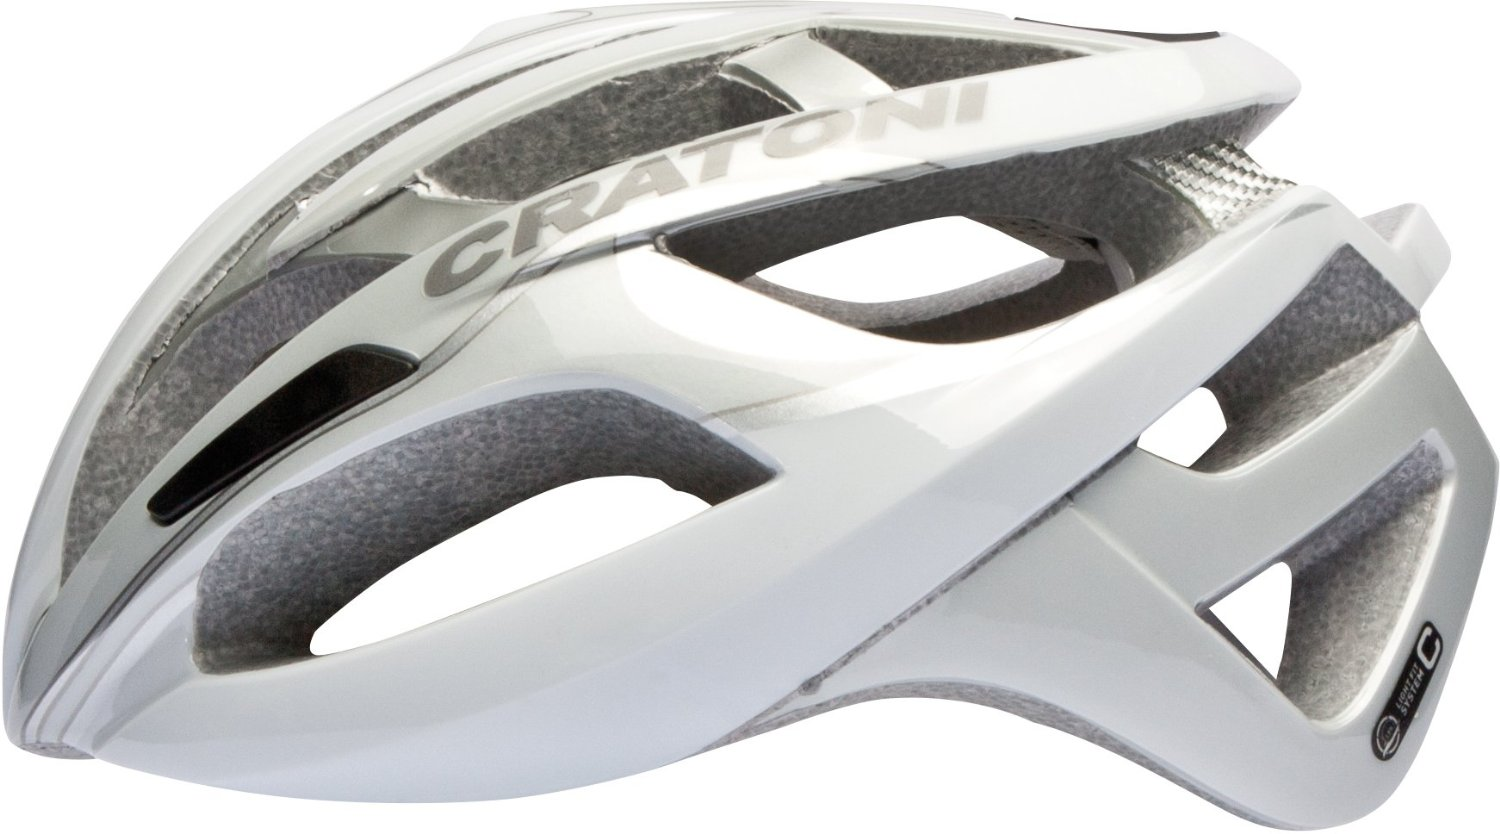 White Cratoni Bicycle Helmets